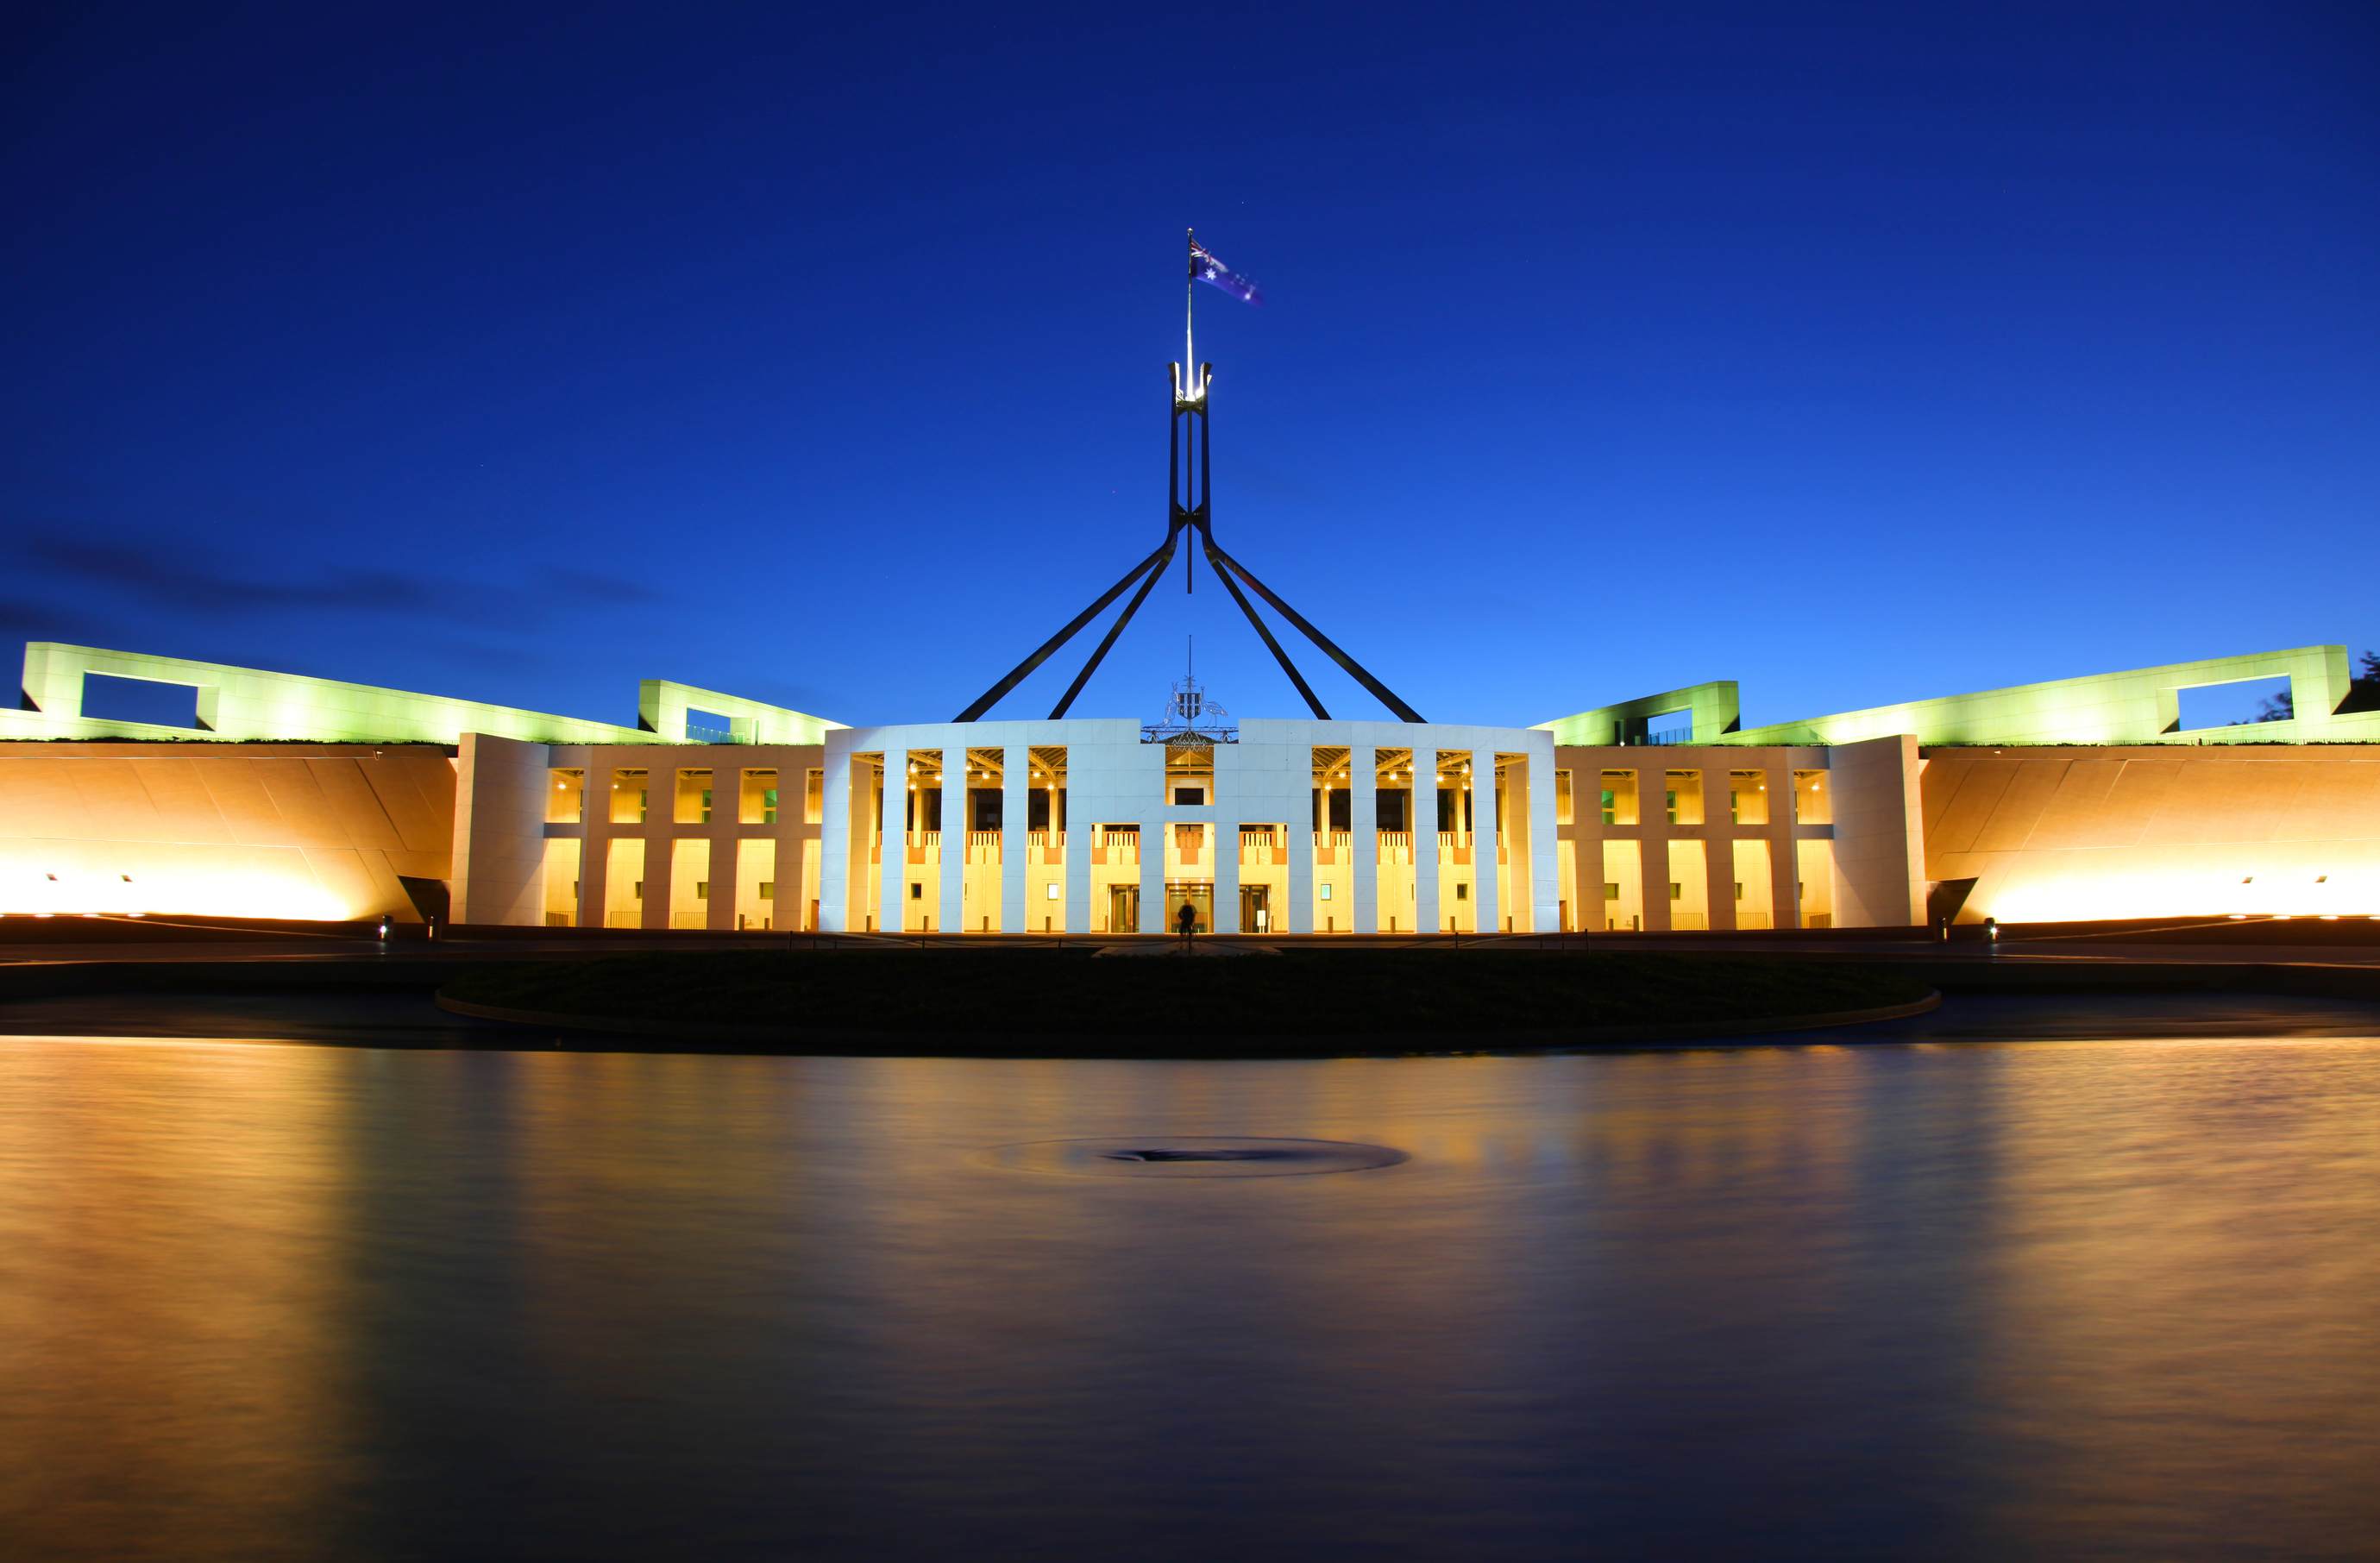 http://www.dreamstime.com/royalty-free-stock-photos-australian-parliament-house-canberra-image29255908